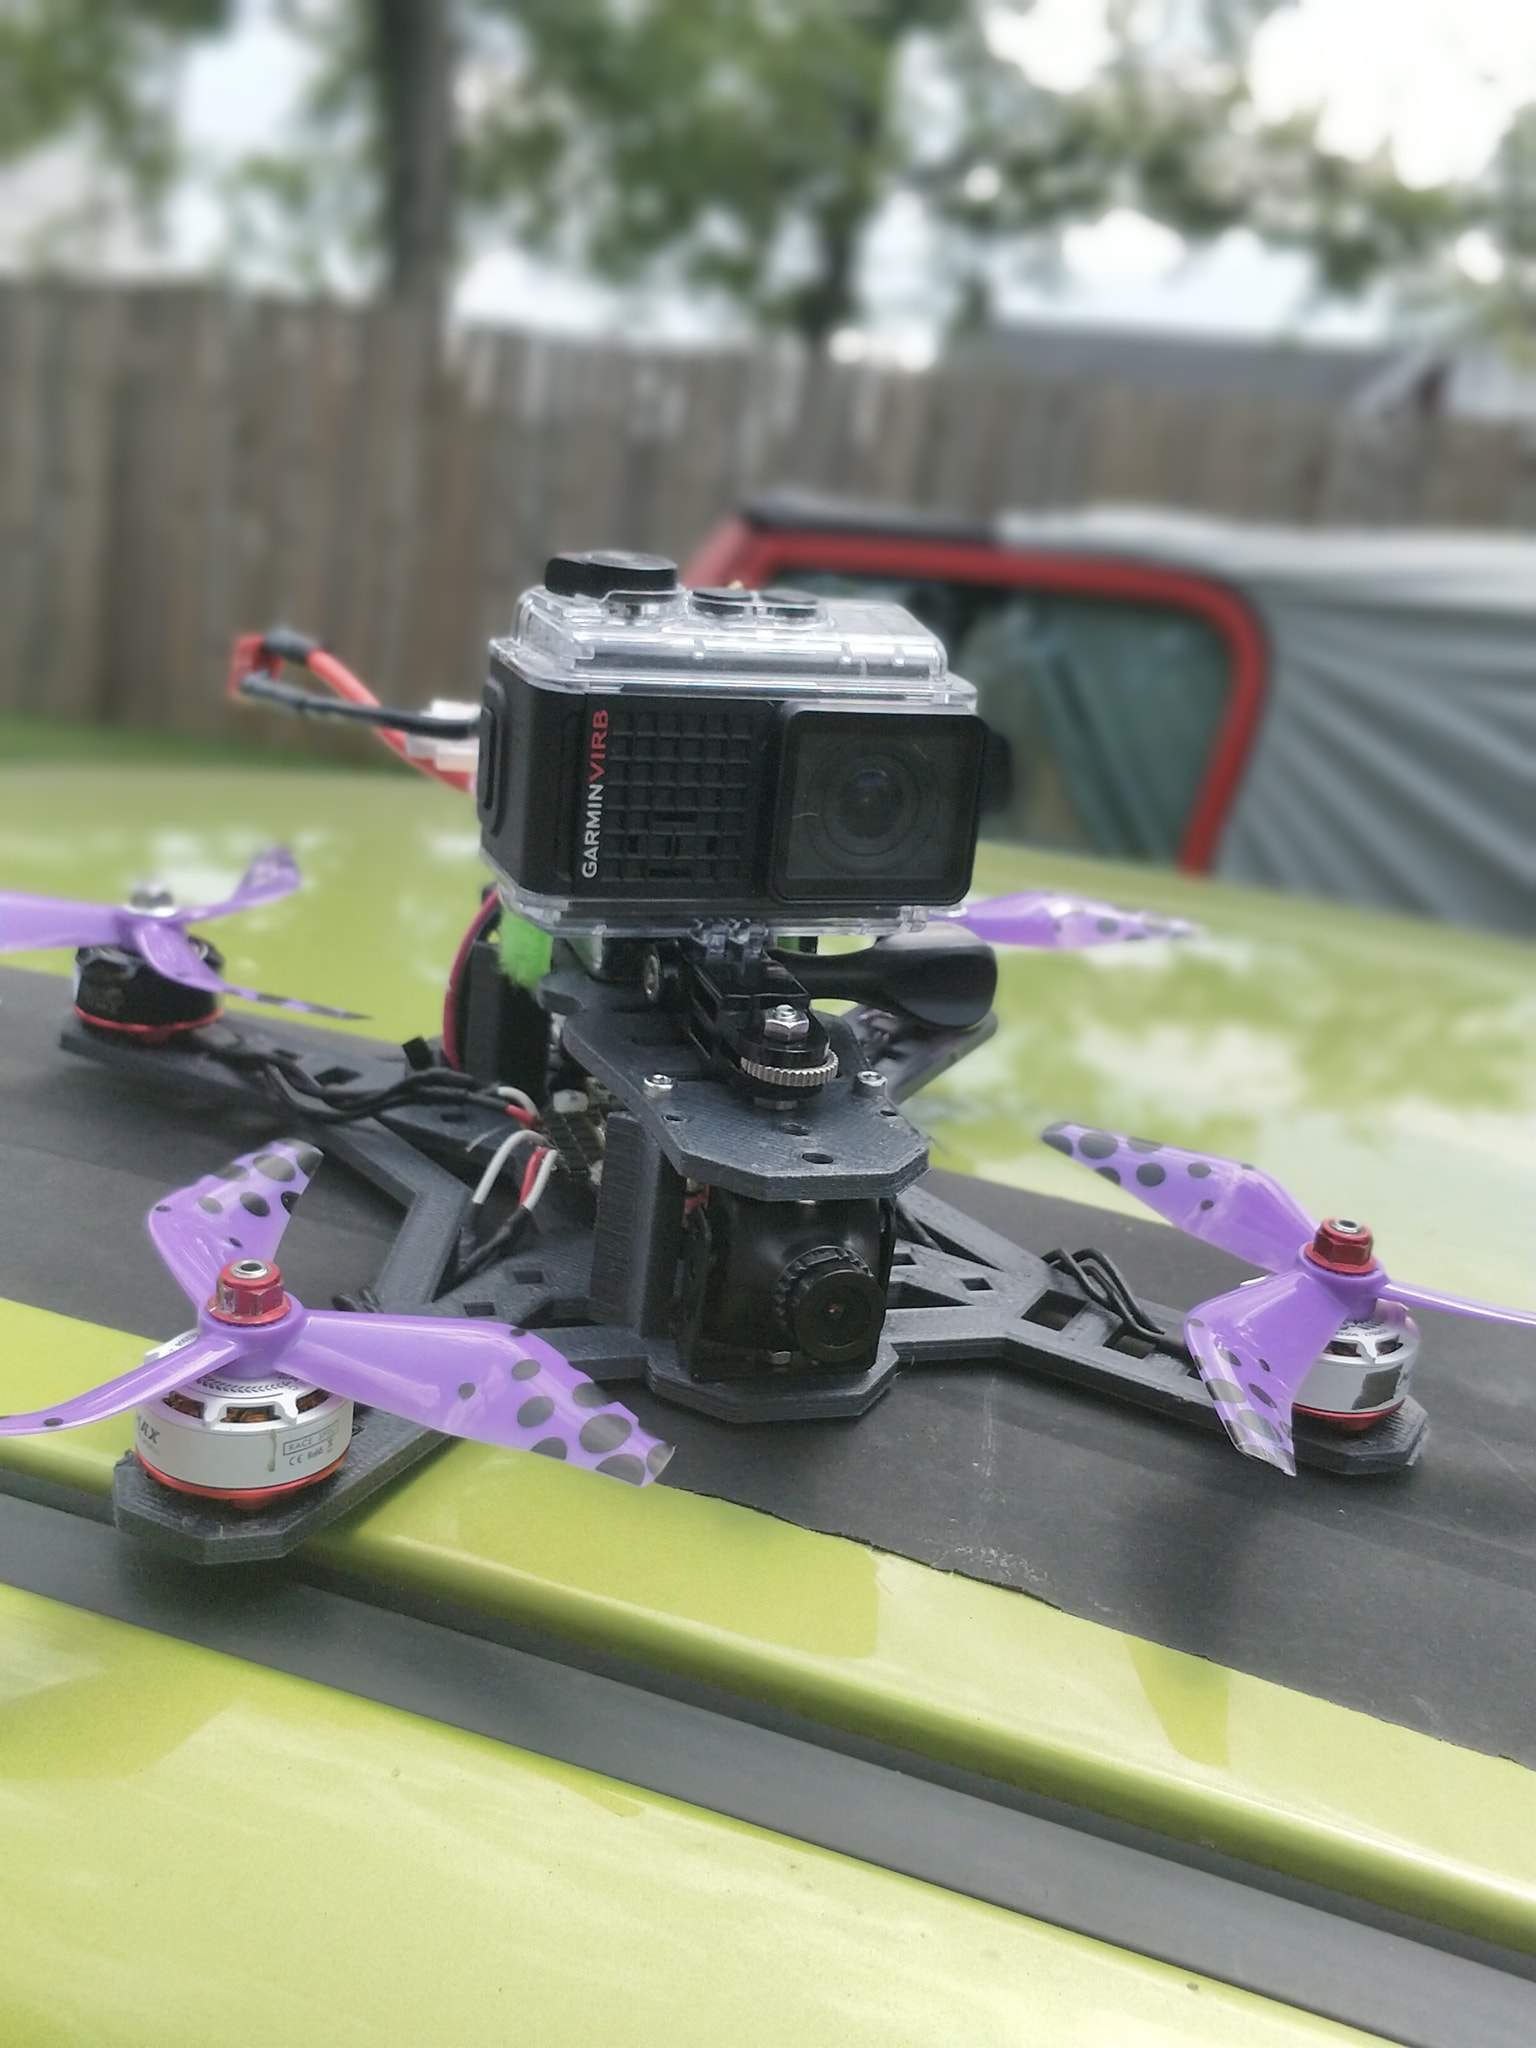 An Above-Us 3D printed Racing Drone